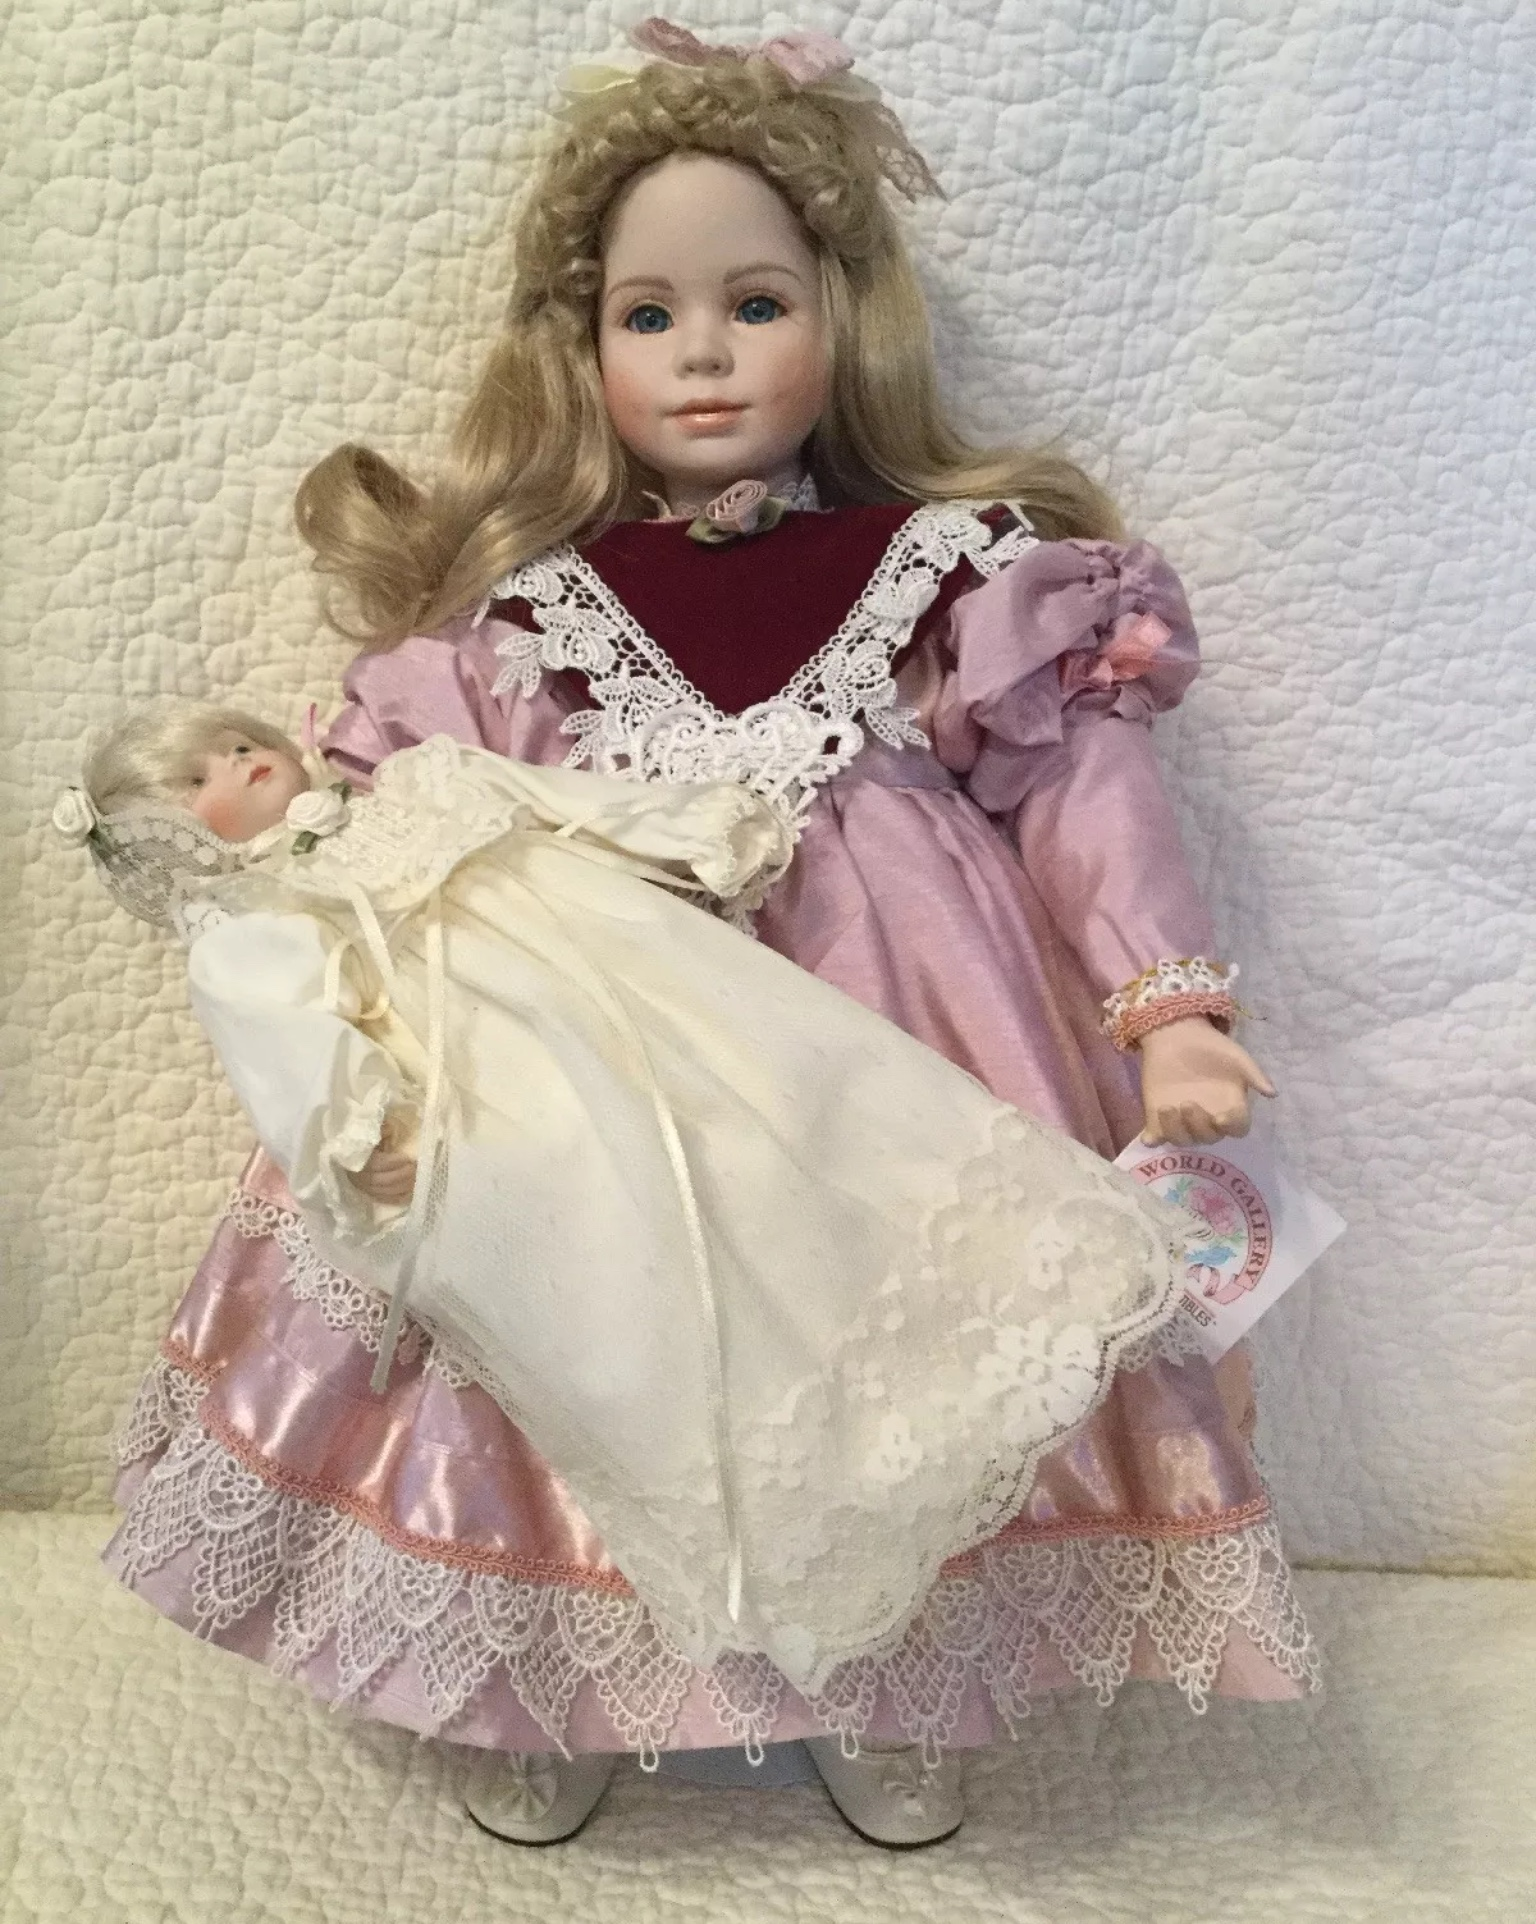 thema-resch-porcelain-doll-fiona-limited-edition